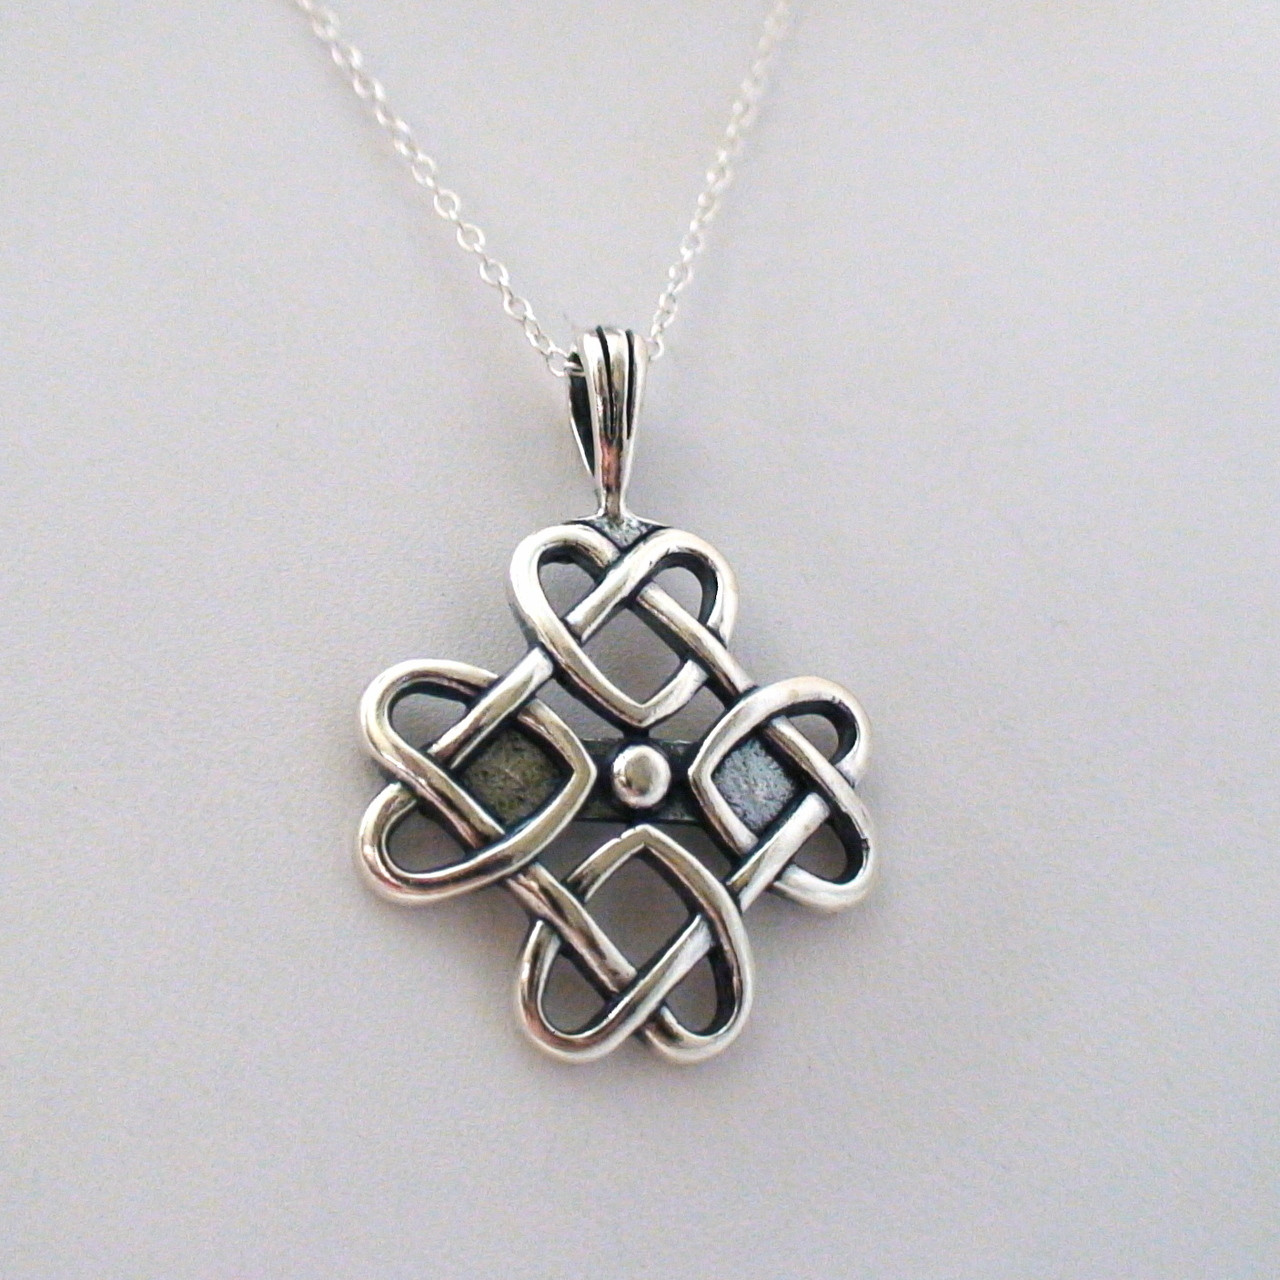 Celtic love knot necklace 925 sterling silver sterling silver celtic love knot necklace aloadofball Image collections